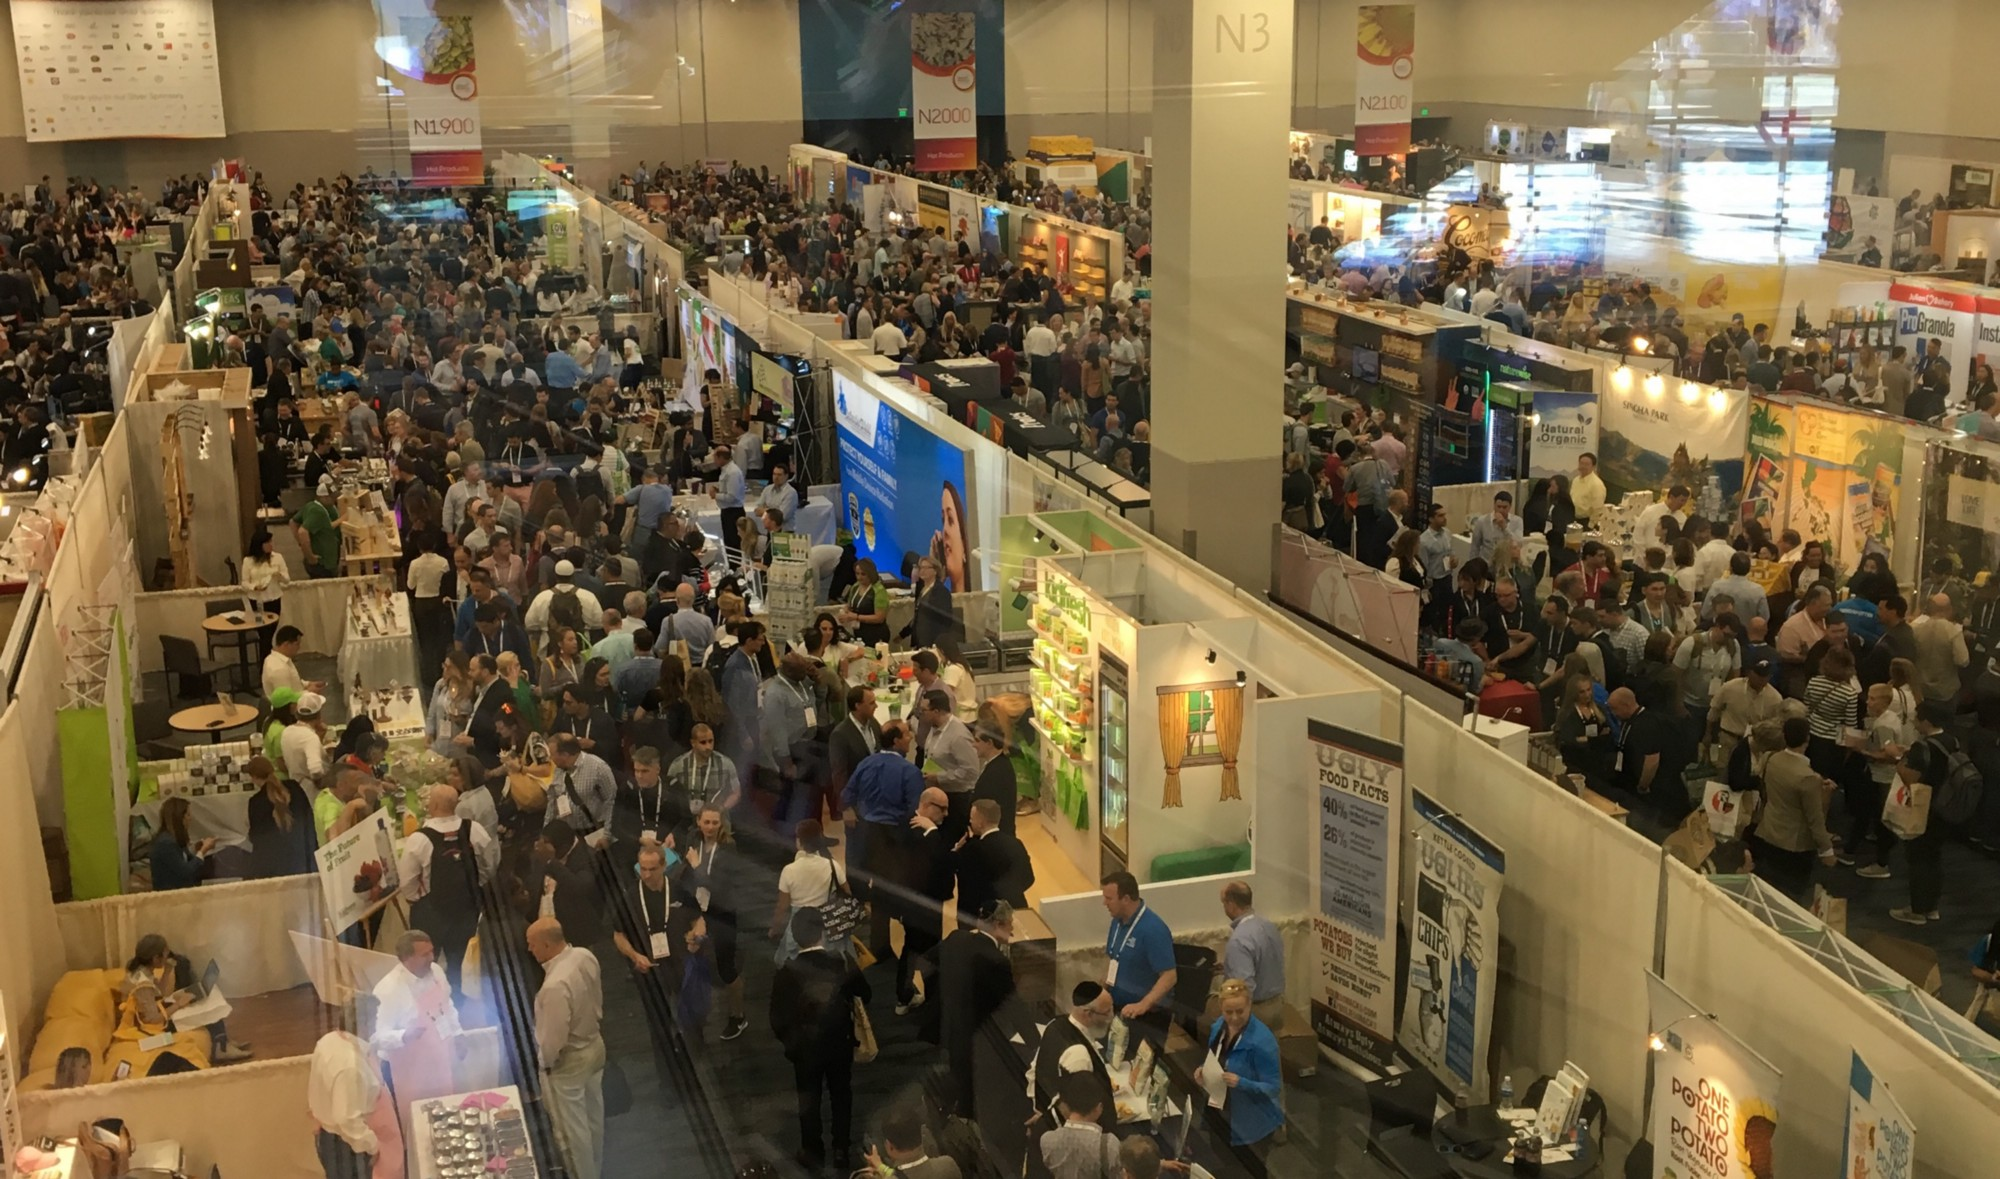 Vendors line the halls of Fancy Food Fest